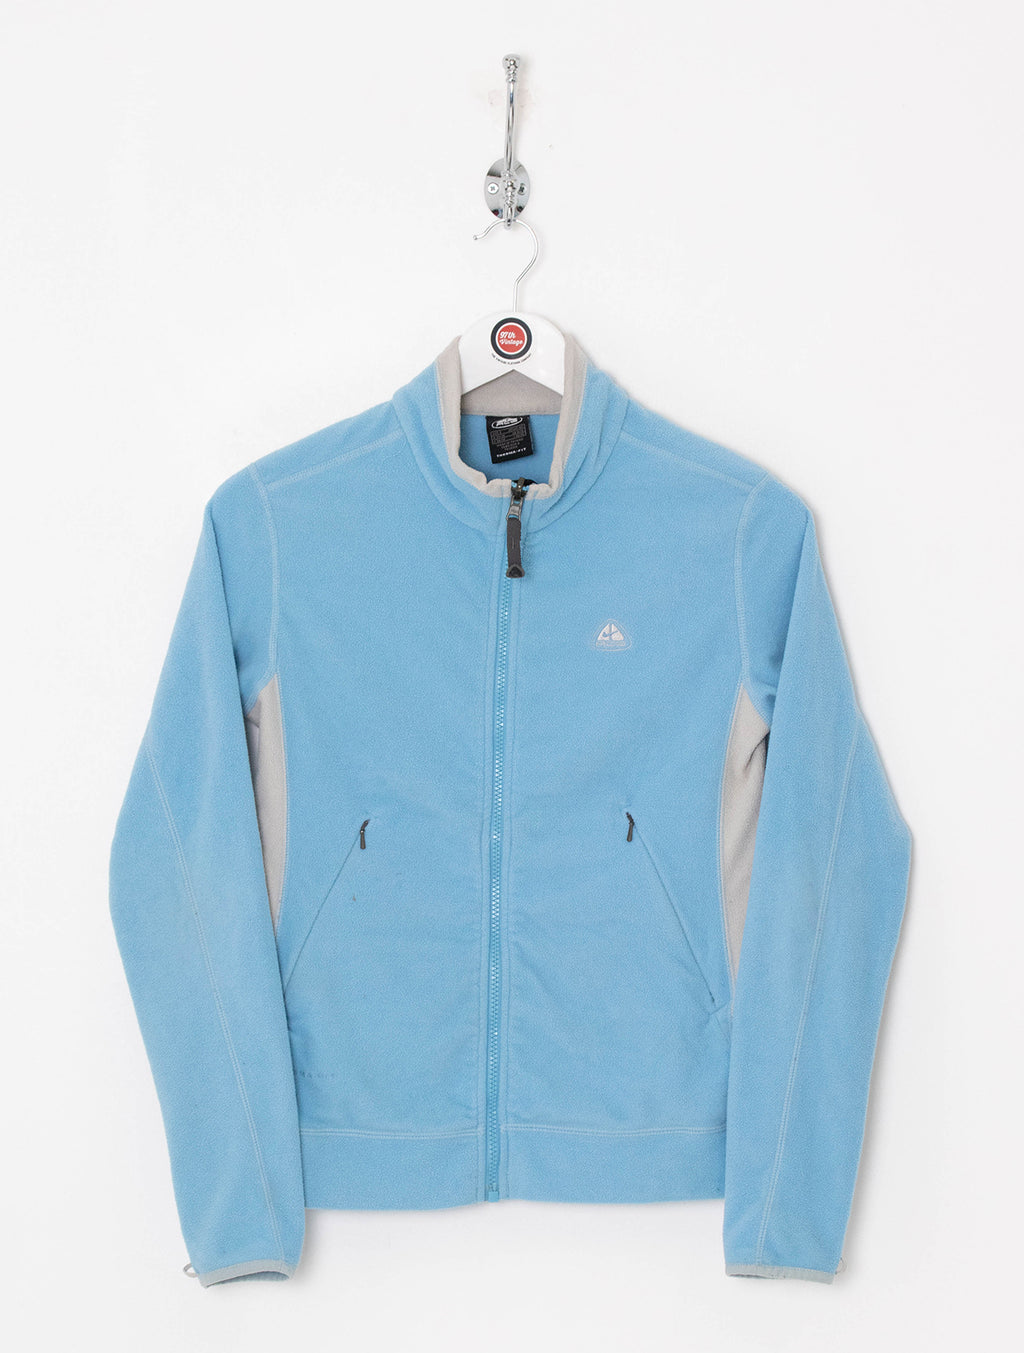 Women's Nike ACG Fleece (S)